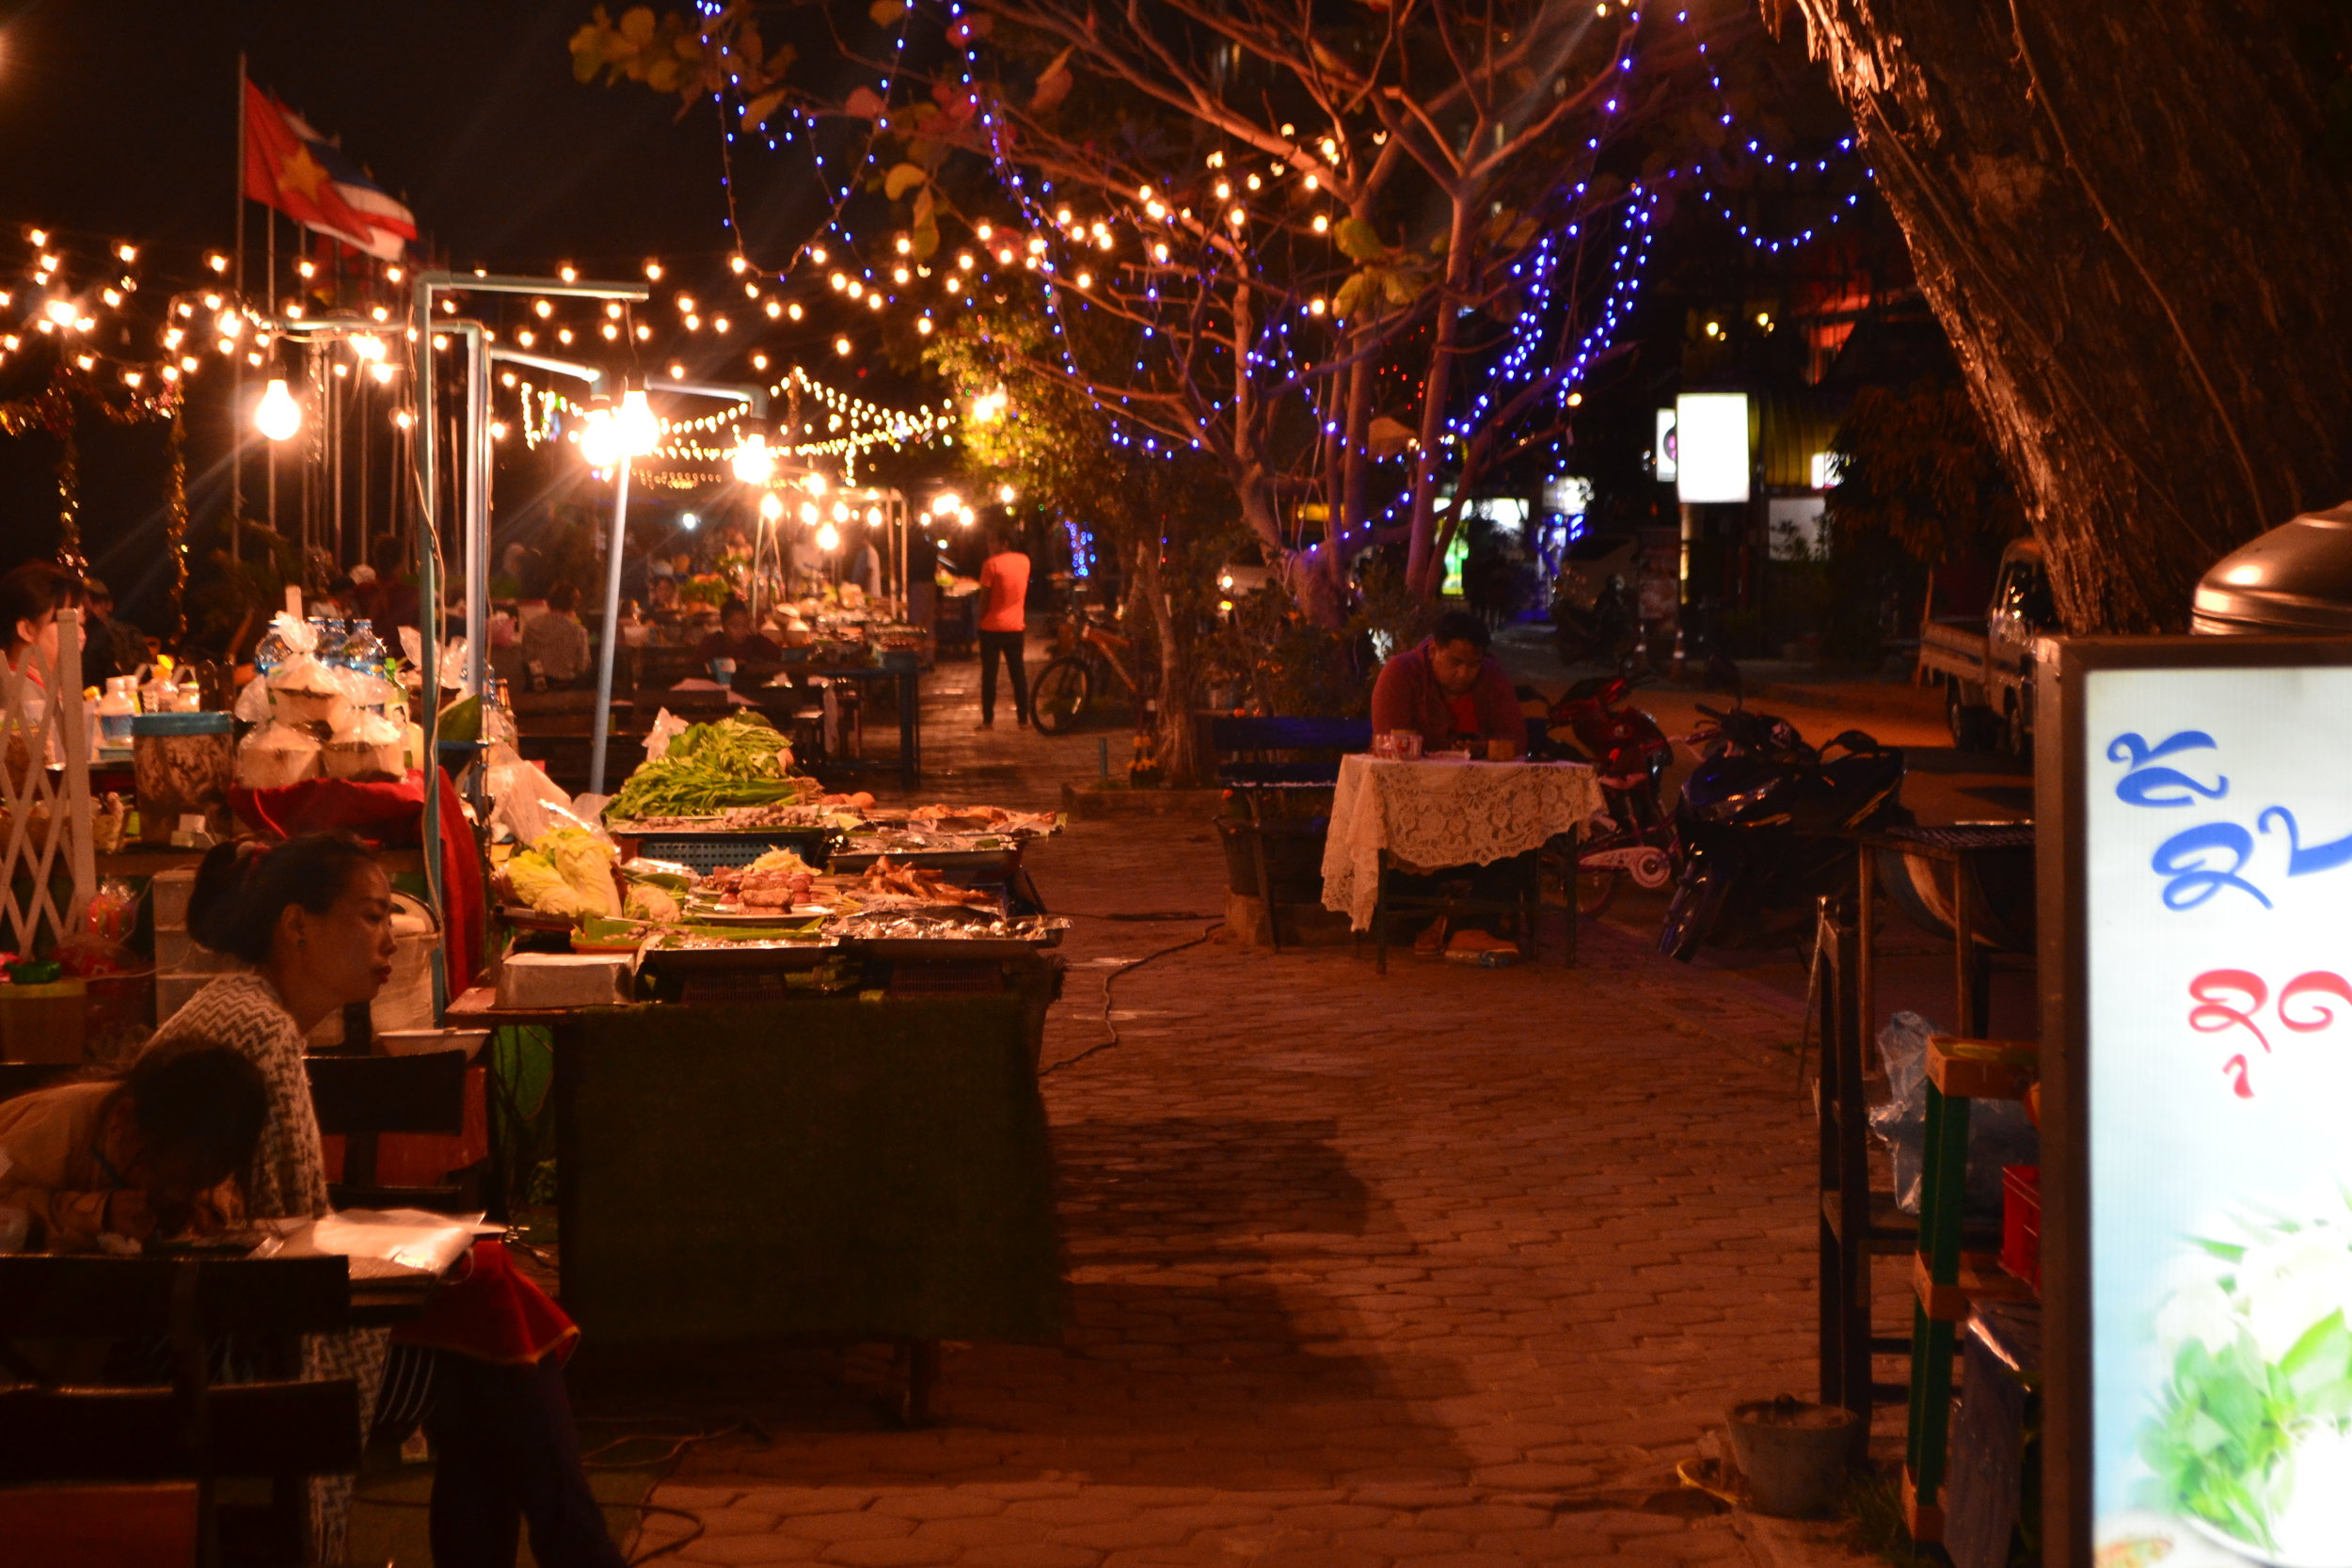 Food stalls along the Mekong River, Vientiane